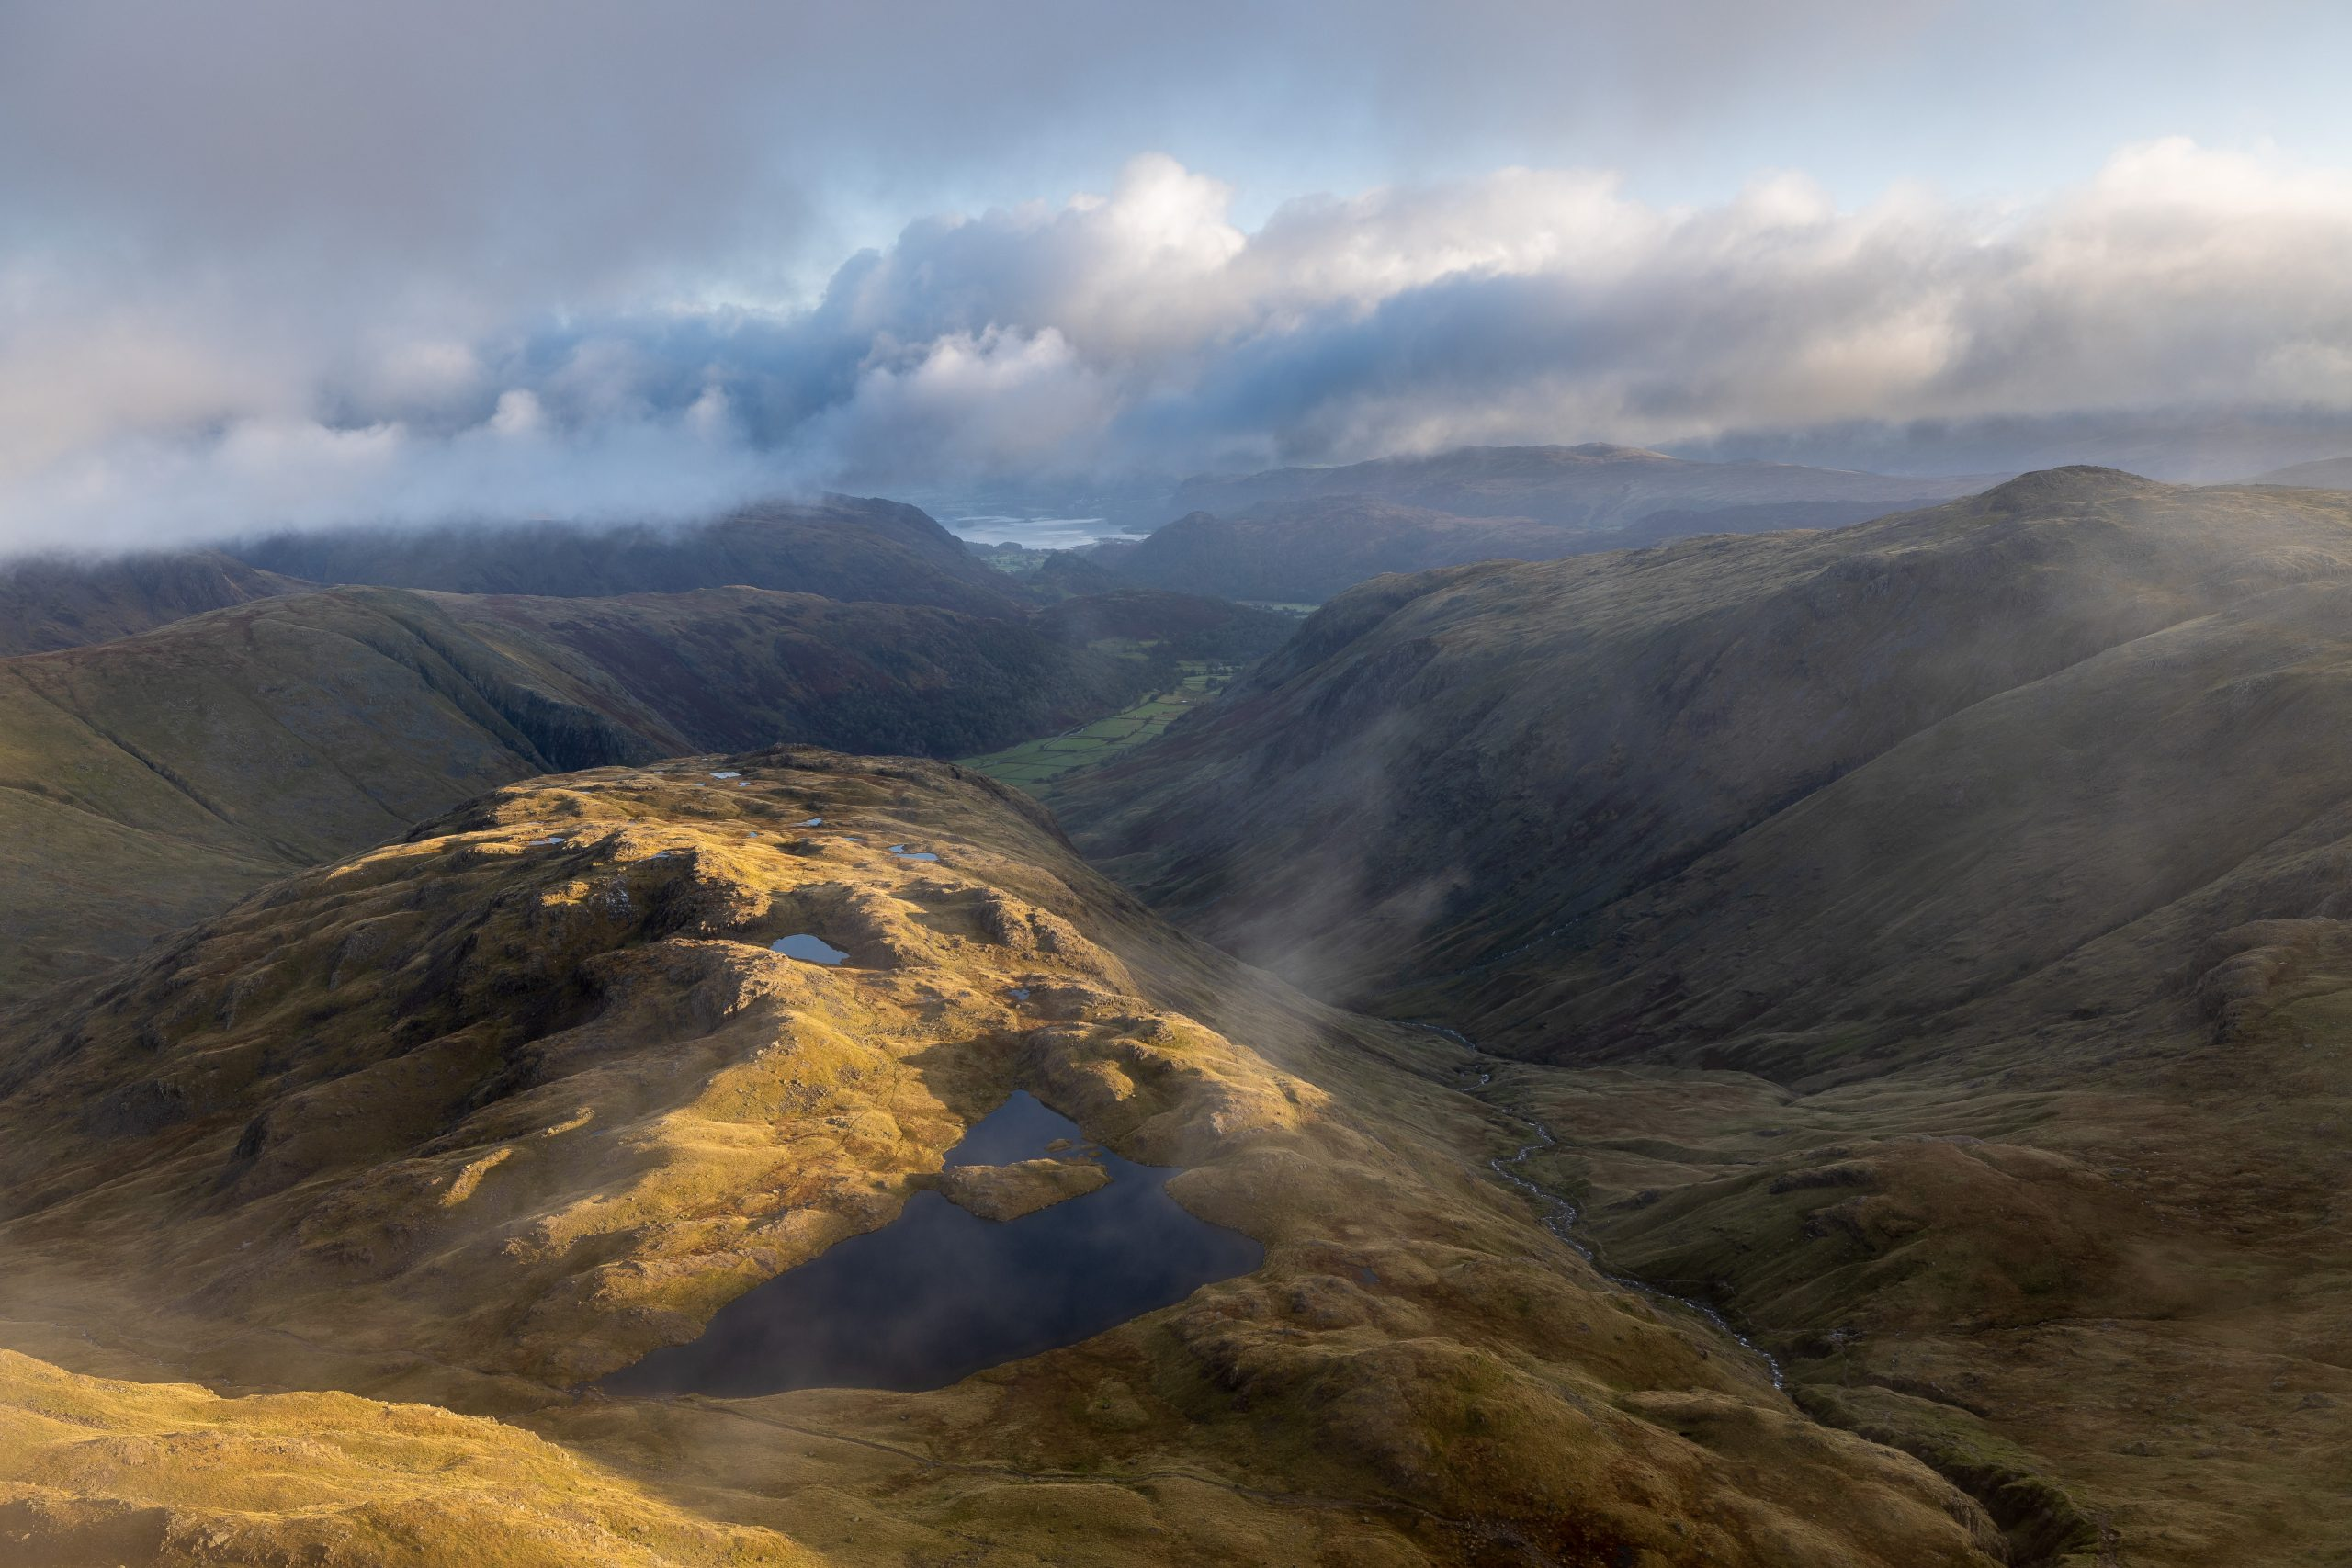 An early morning view during a guided walk on Great End in the Lake District looking down at Sprinkling Tarn and Borrowdale to Derwent Water